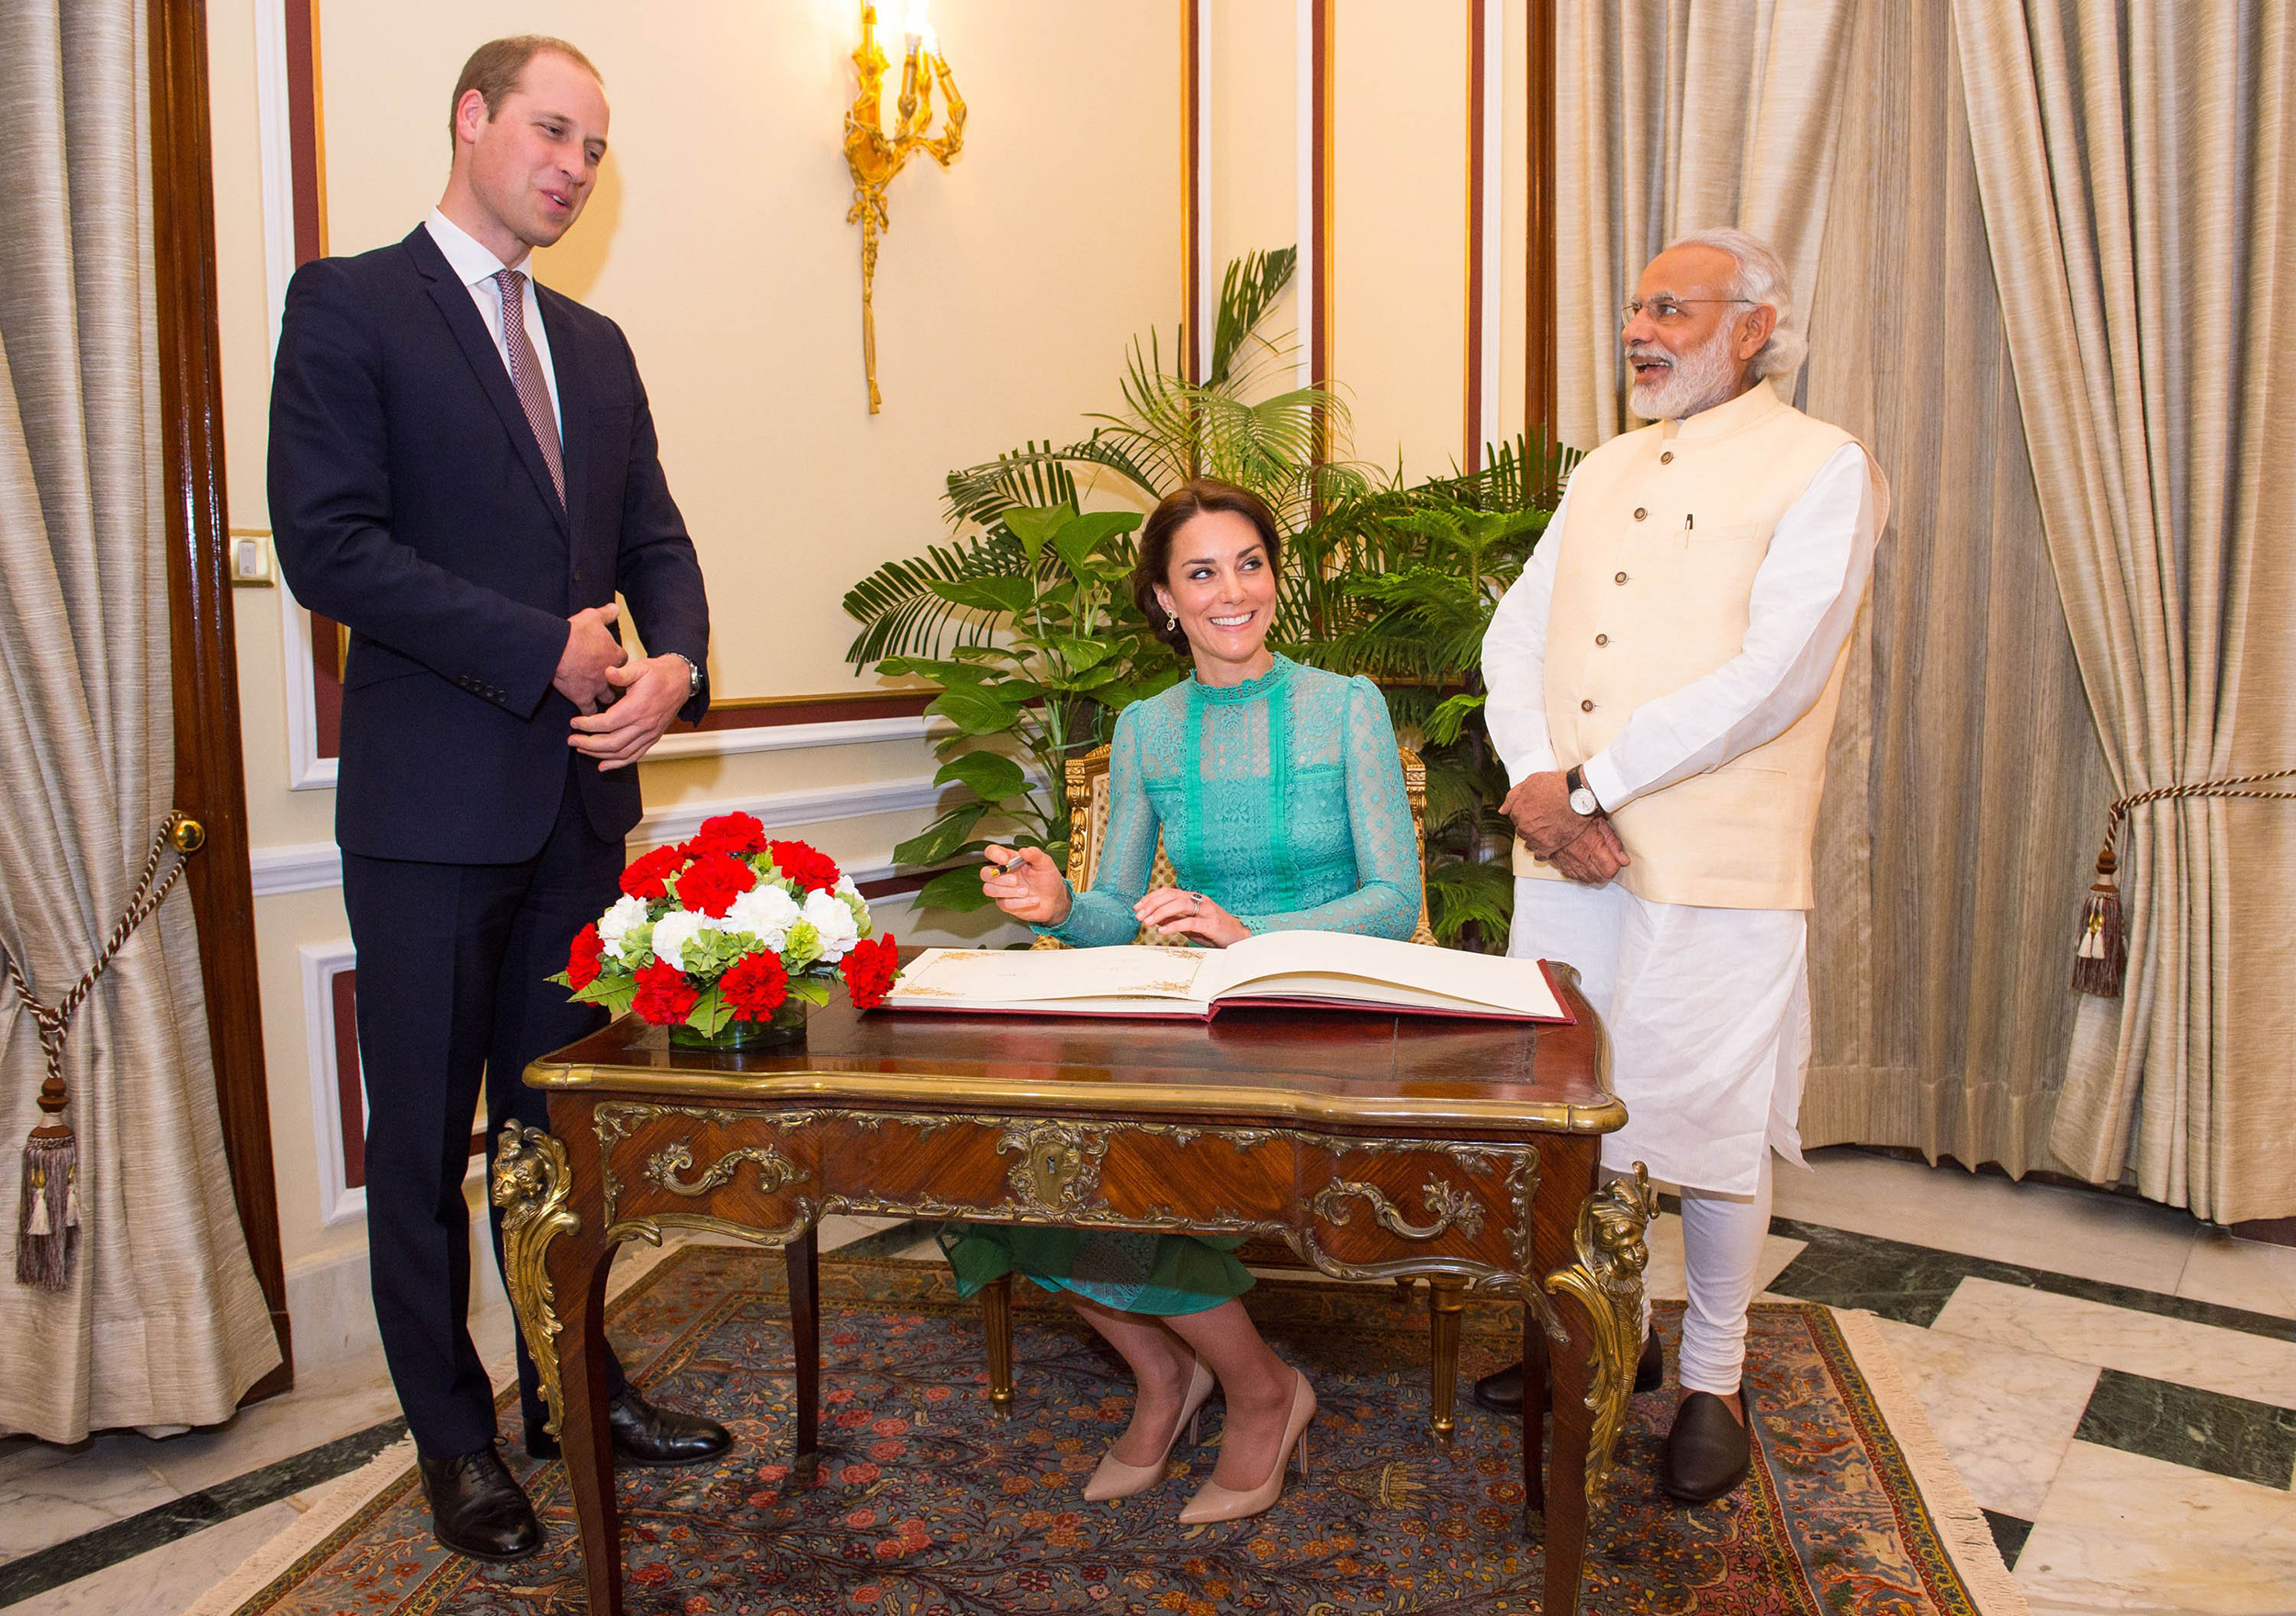 Catherine, Duchess of Cambridge and Prince William, Duke of Cambridge meet Prime Minister of India Narenda Modi in New Delhi's Hyderabad House in New Dehli, India on April 12, 2016.